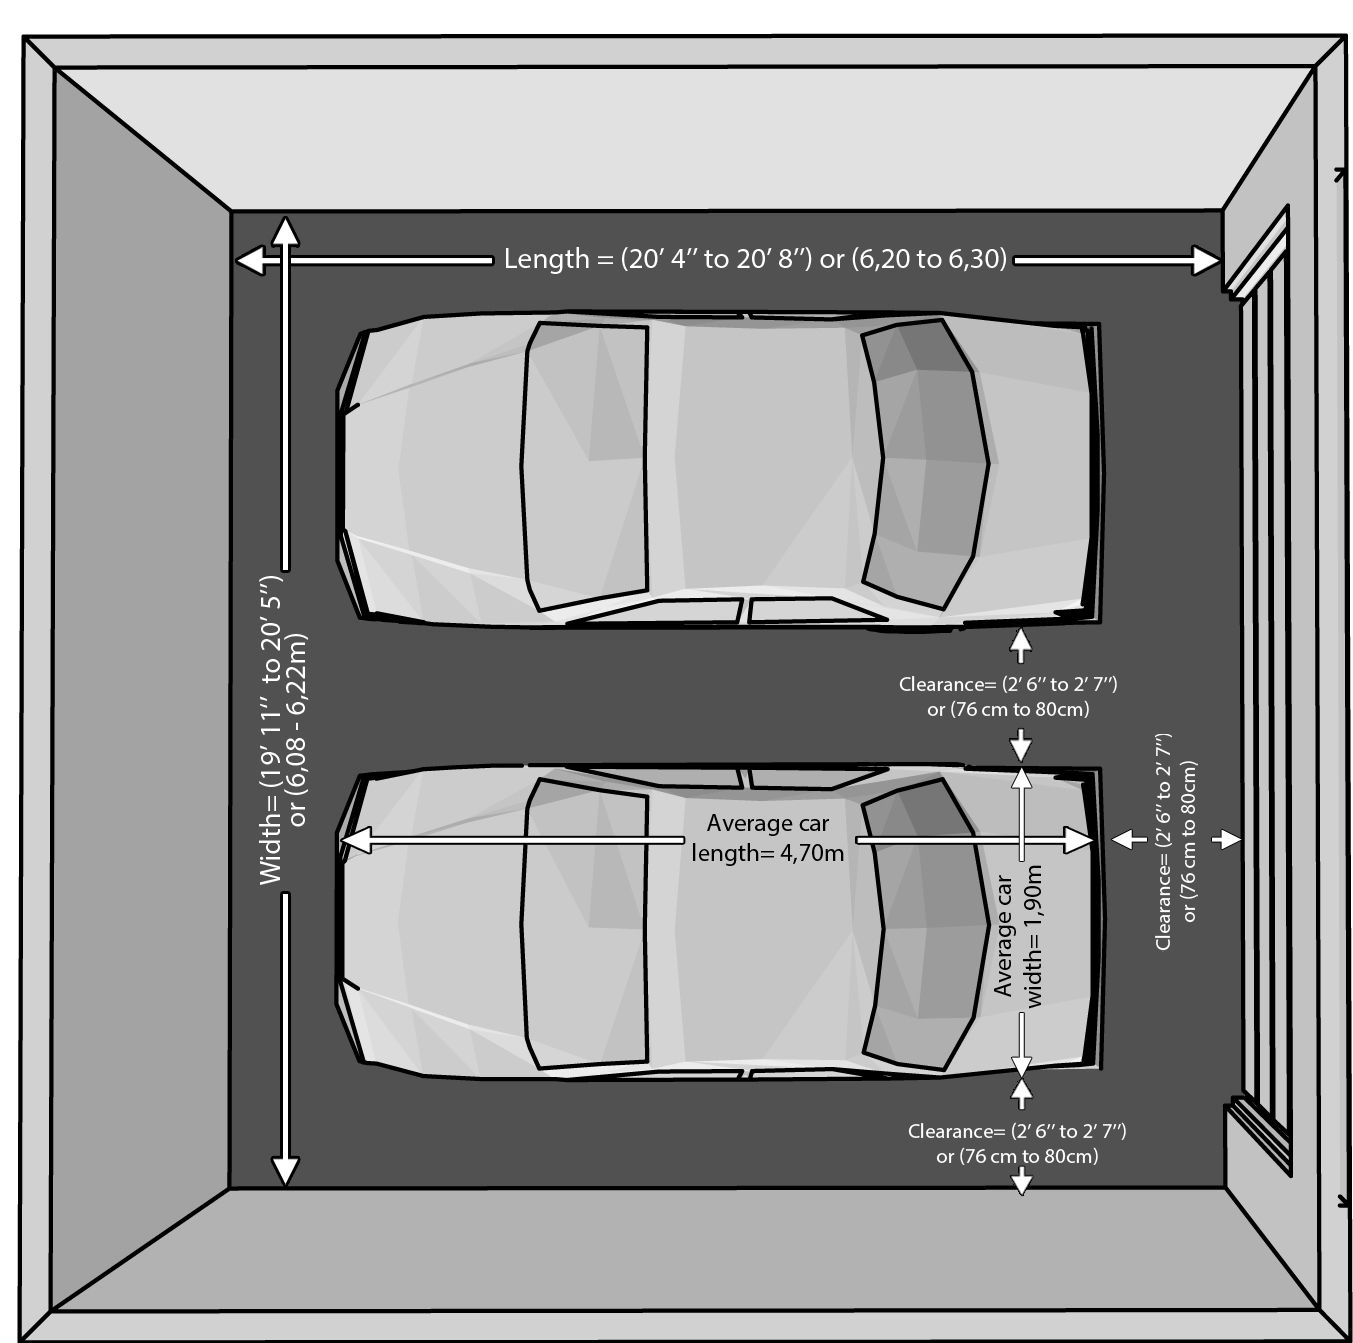 Garage size for two cars garage dimensions for two cars for 2 car garage size